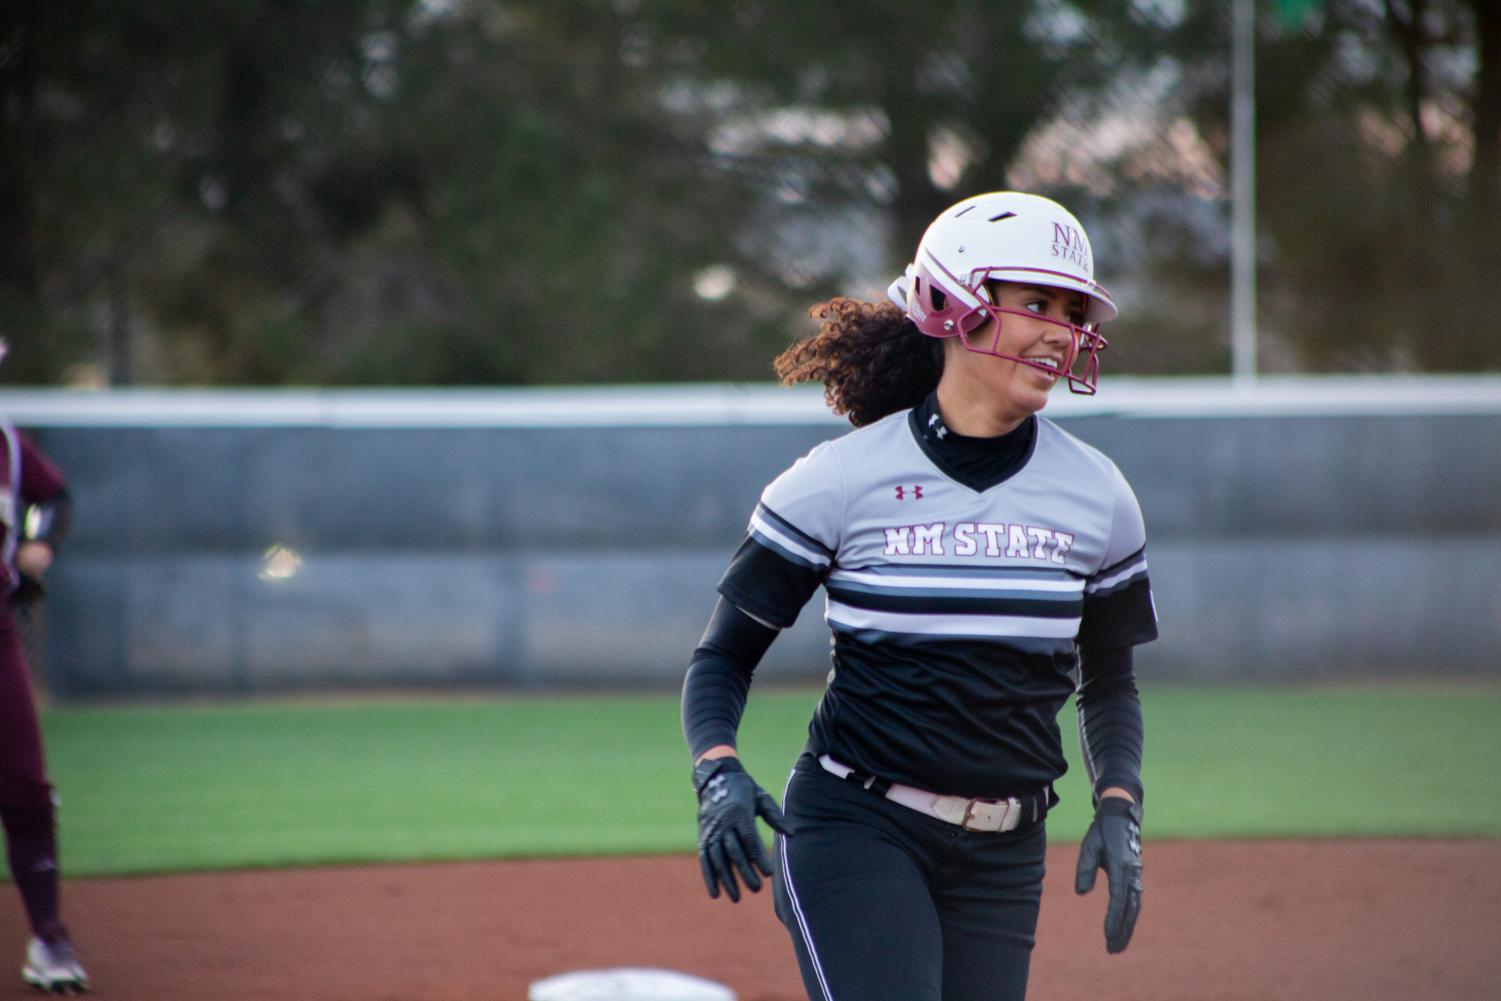 After continuing their offensive excellence vs. Texas State, the Aggies come up short for the first time this season against Bradley, scoring just three runs in the back half of the late-night doubleheader.